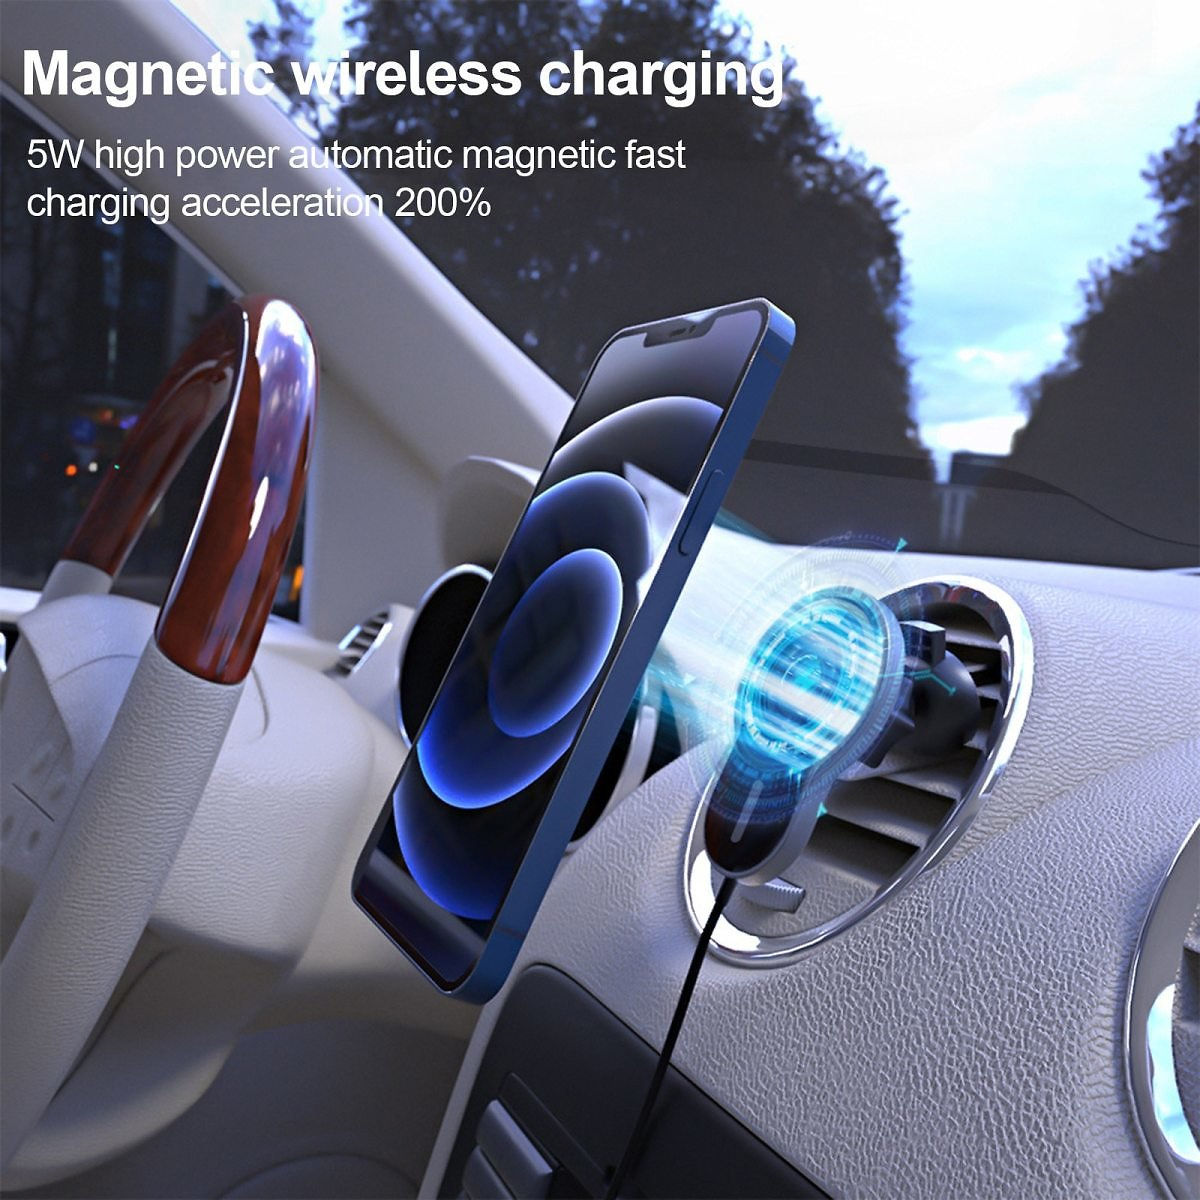 US $14.12 53% OFF|15W Magnetic Car Wireless Charger Fast Charging Mount Air Vent Phone Stand For Iphone 12 Pro Max 12Mini Magsafe Car Holder D18|Car Chargers| - AliExpress